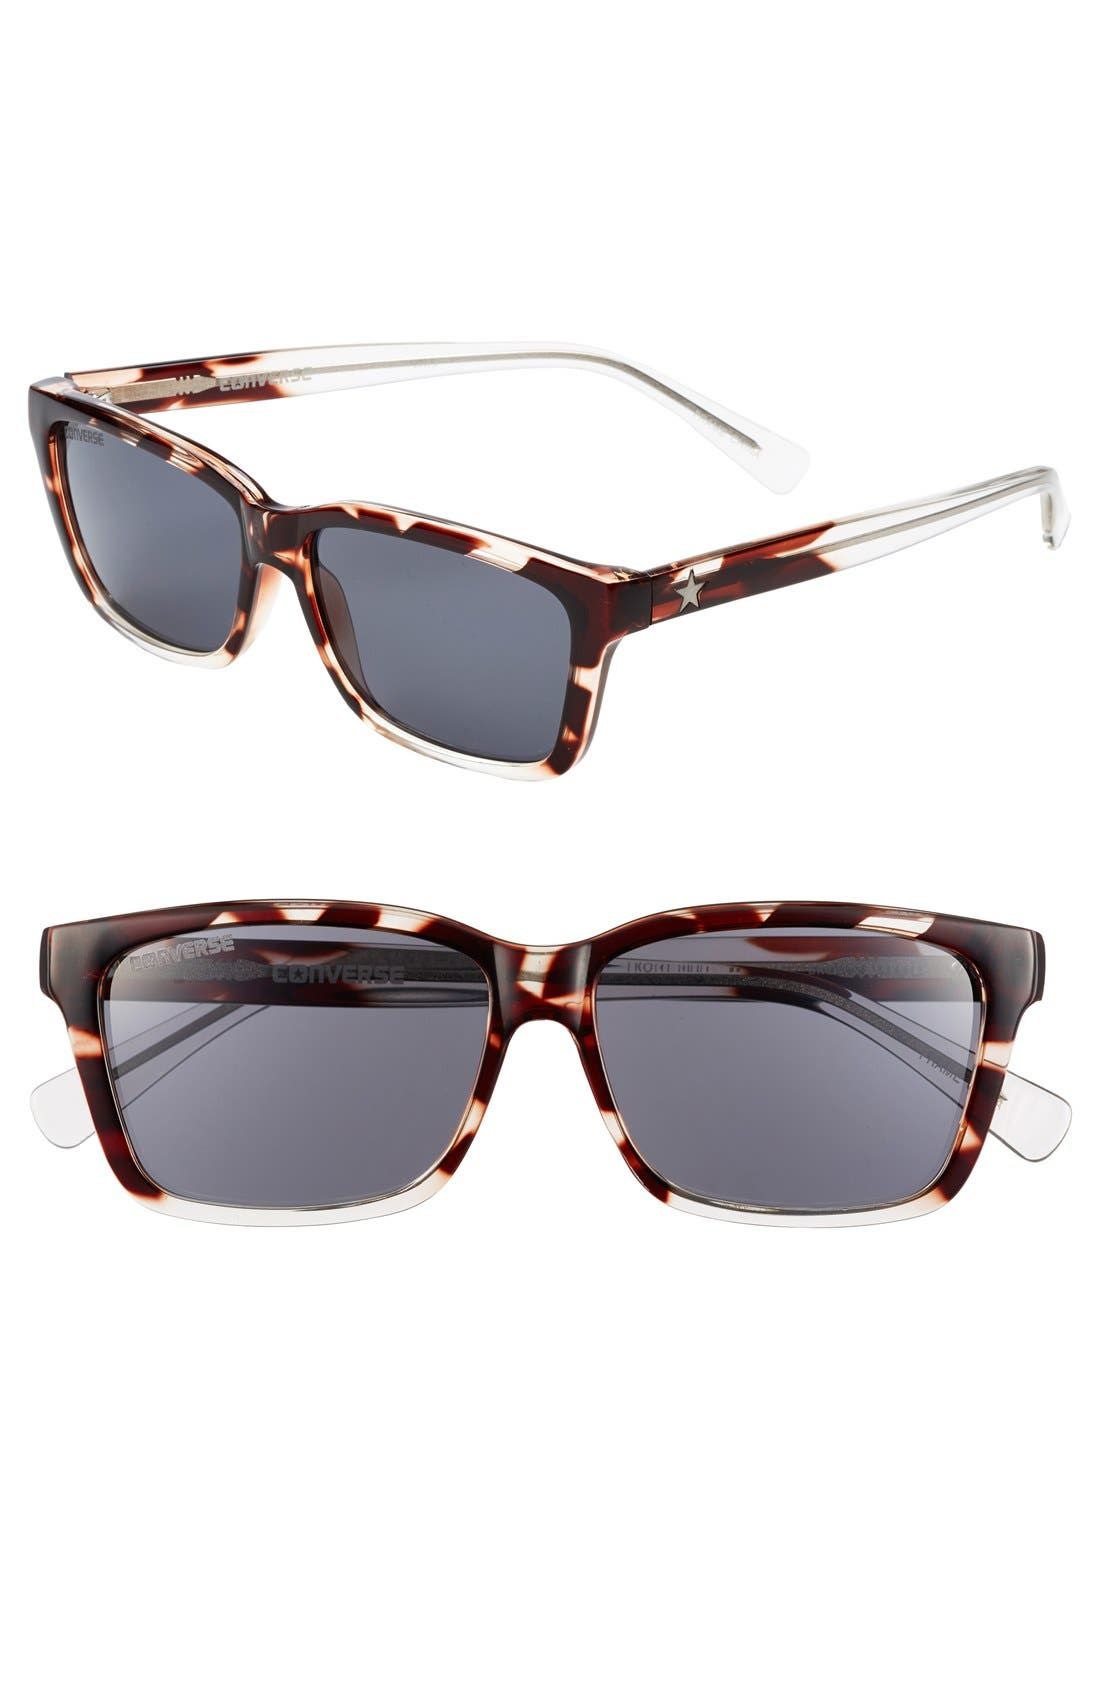 Alternate Image 1 Selected - Converse 'Front Man' 55mm Sunglasses